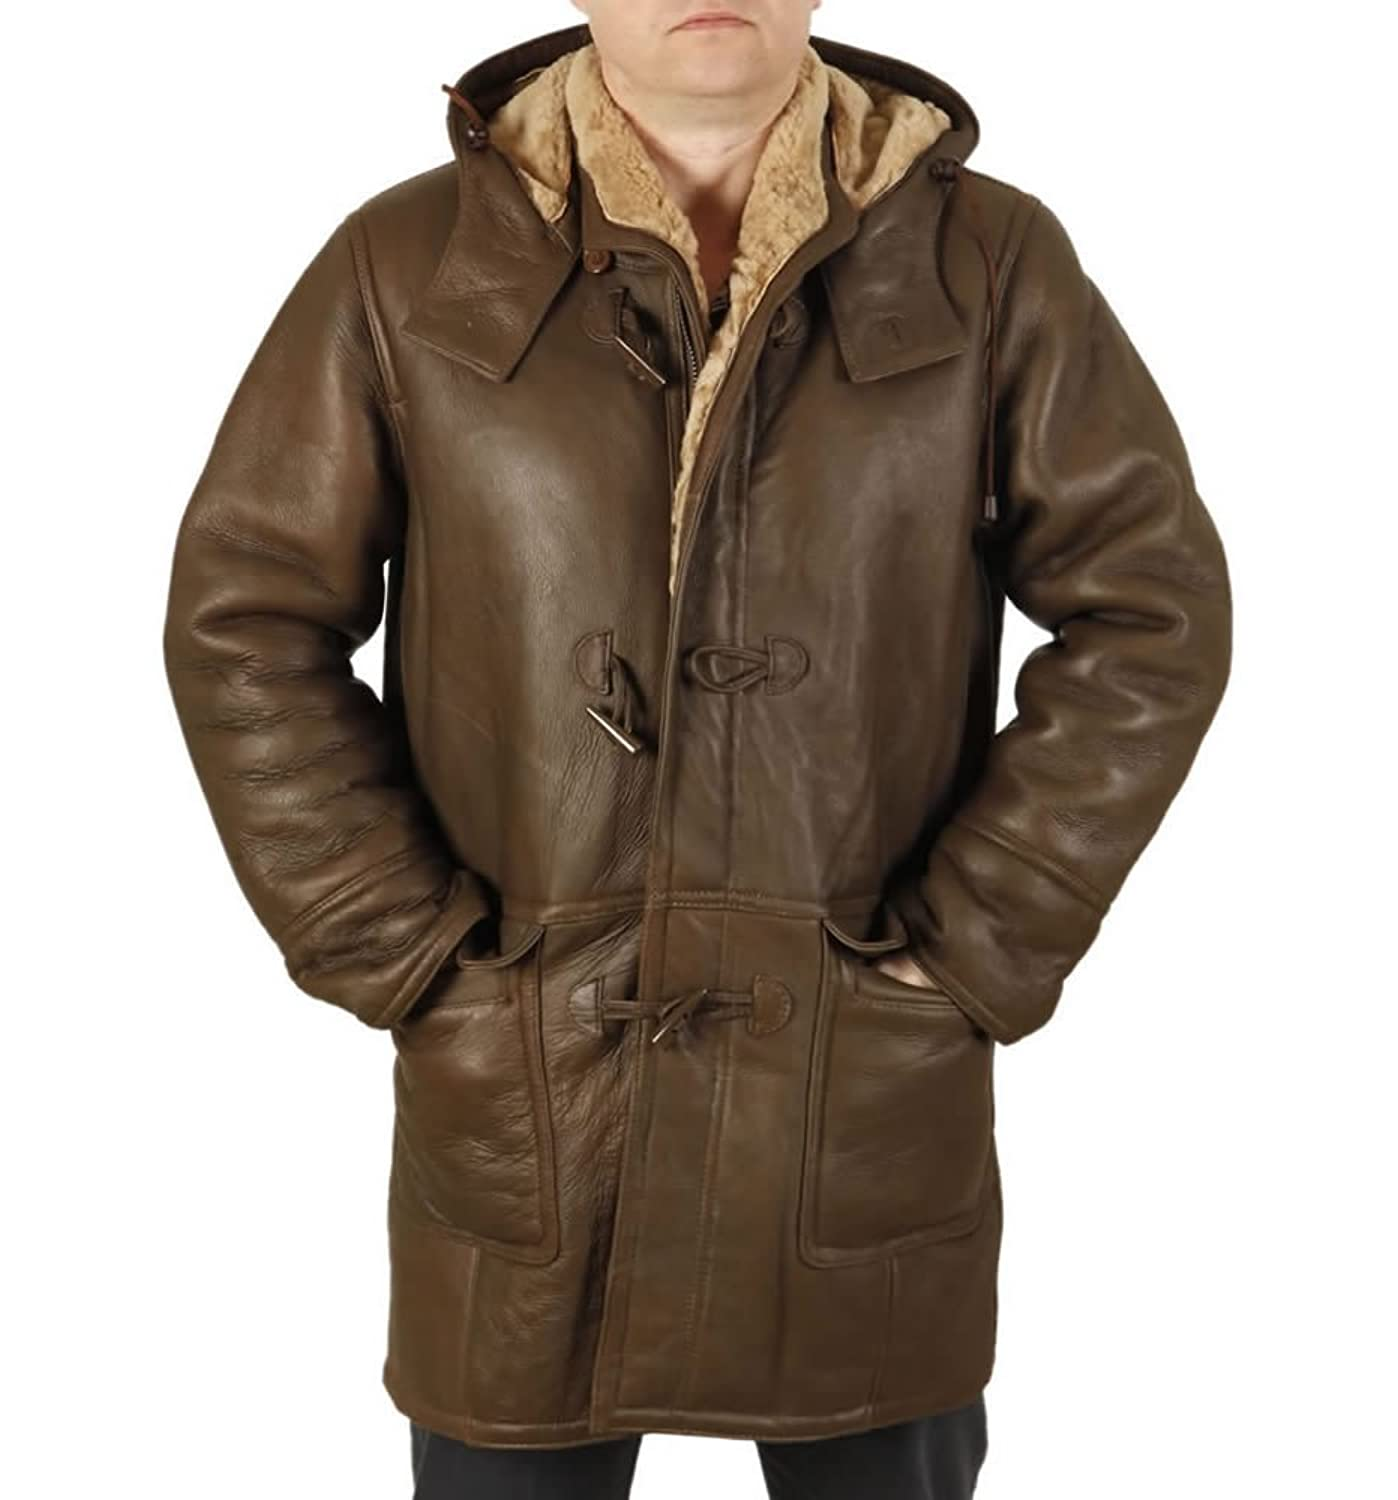 Simons Leather Men's Aviator Sheepskin Duffle Coat at Amazon Men's